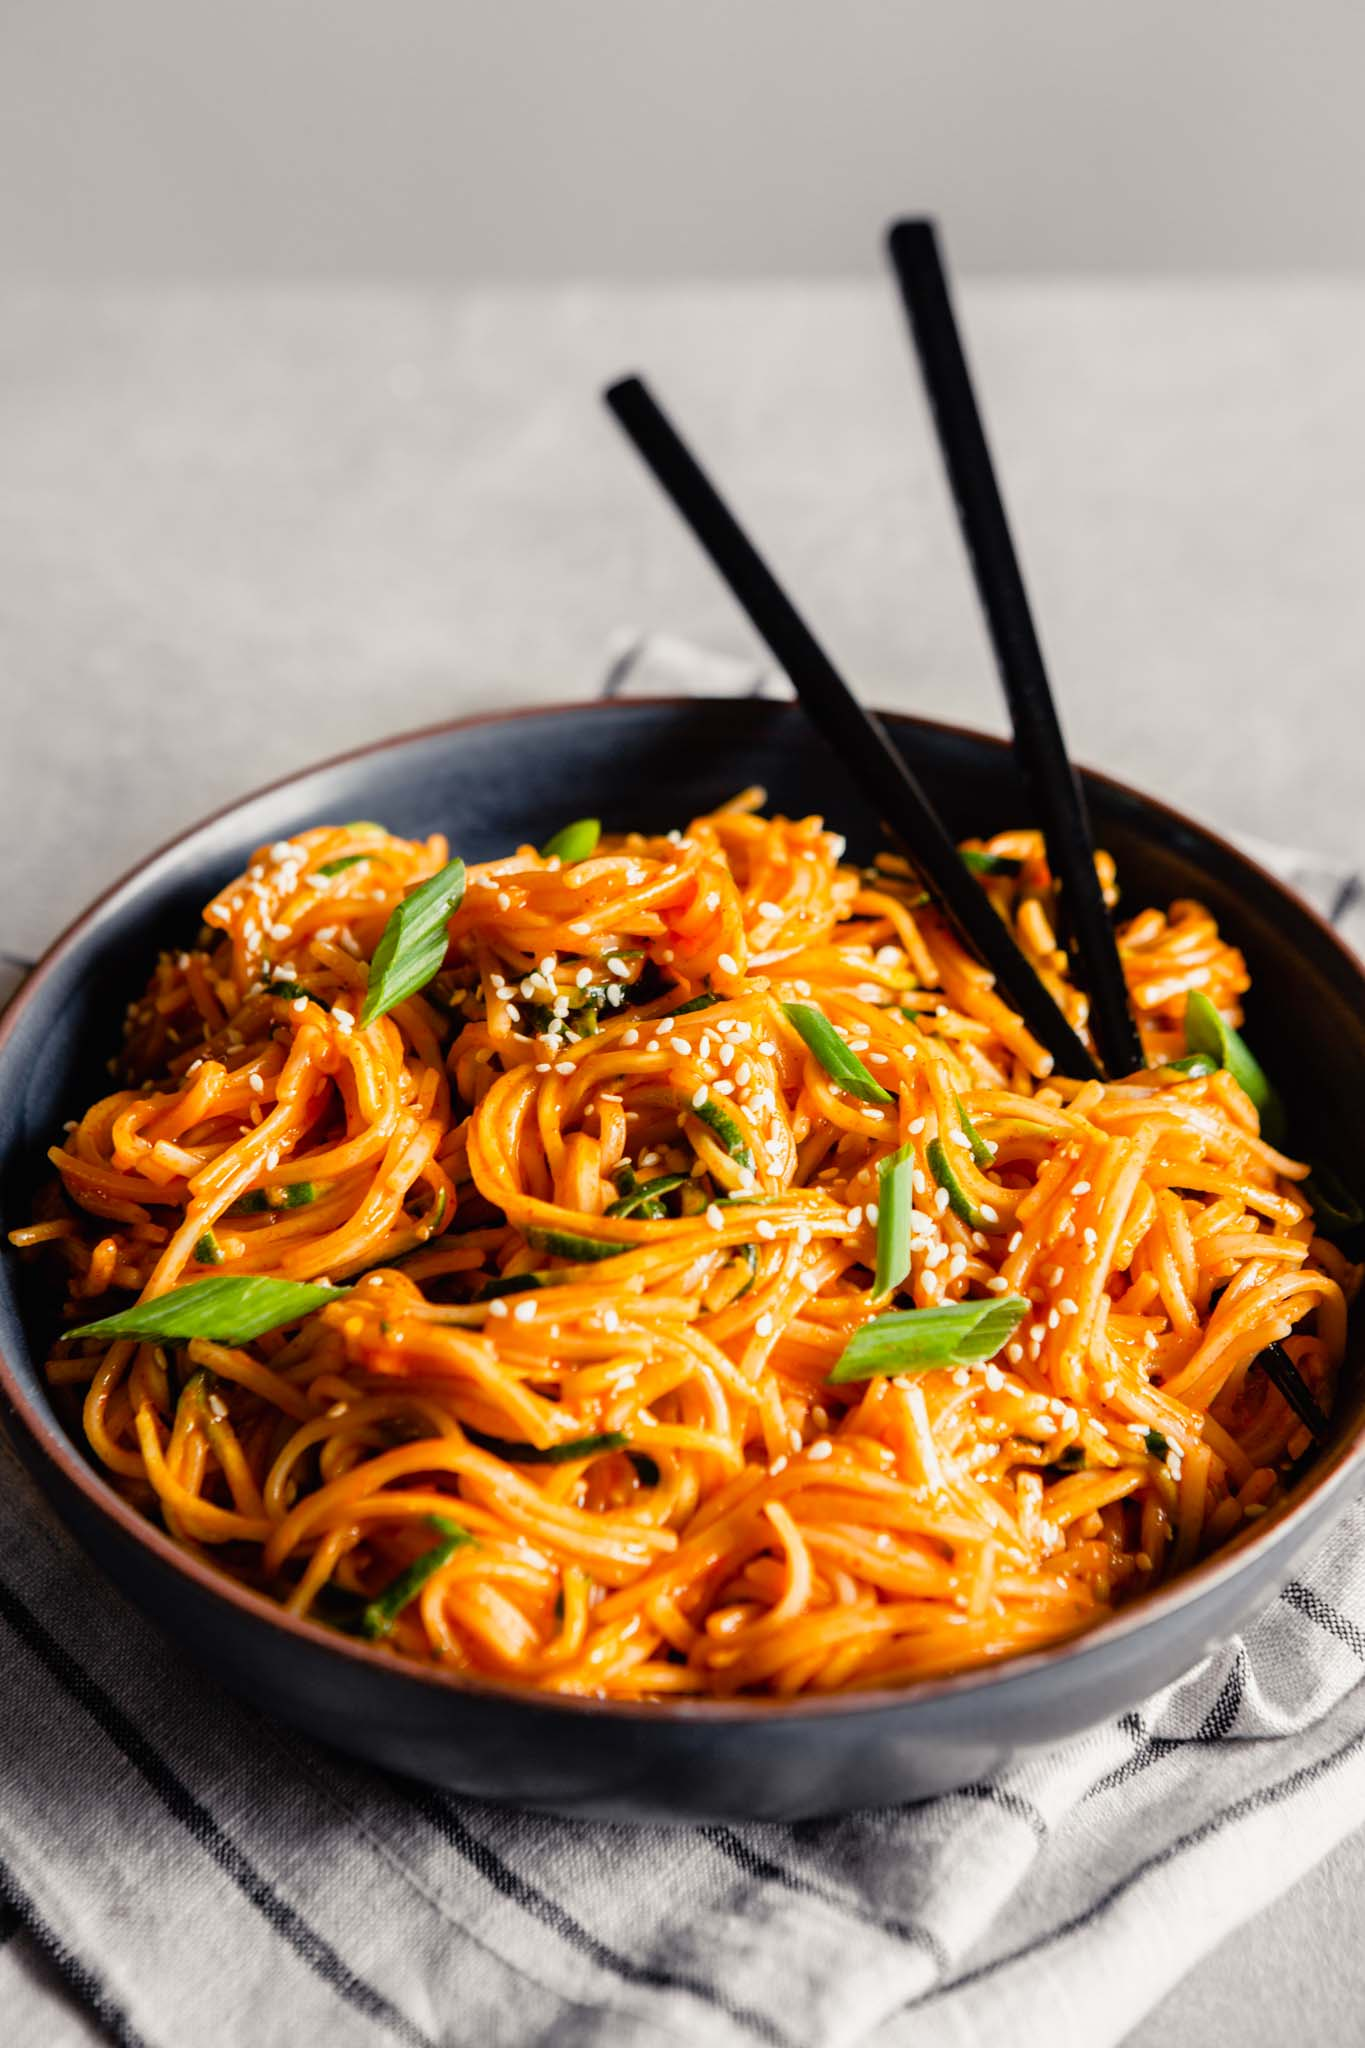 Side angle of bright orange gochujang noodles in a blue bowl with chopsticks sticking out